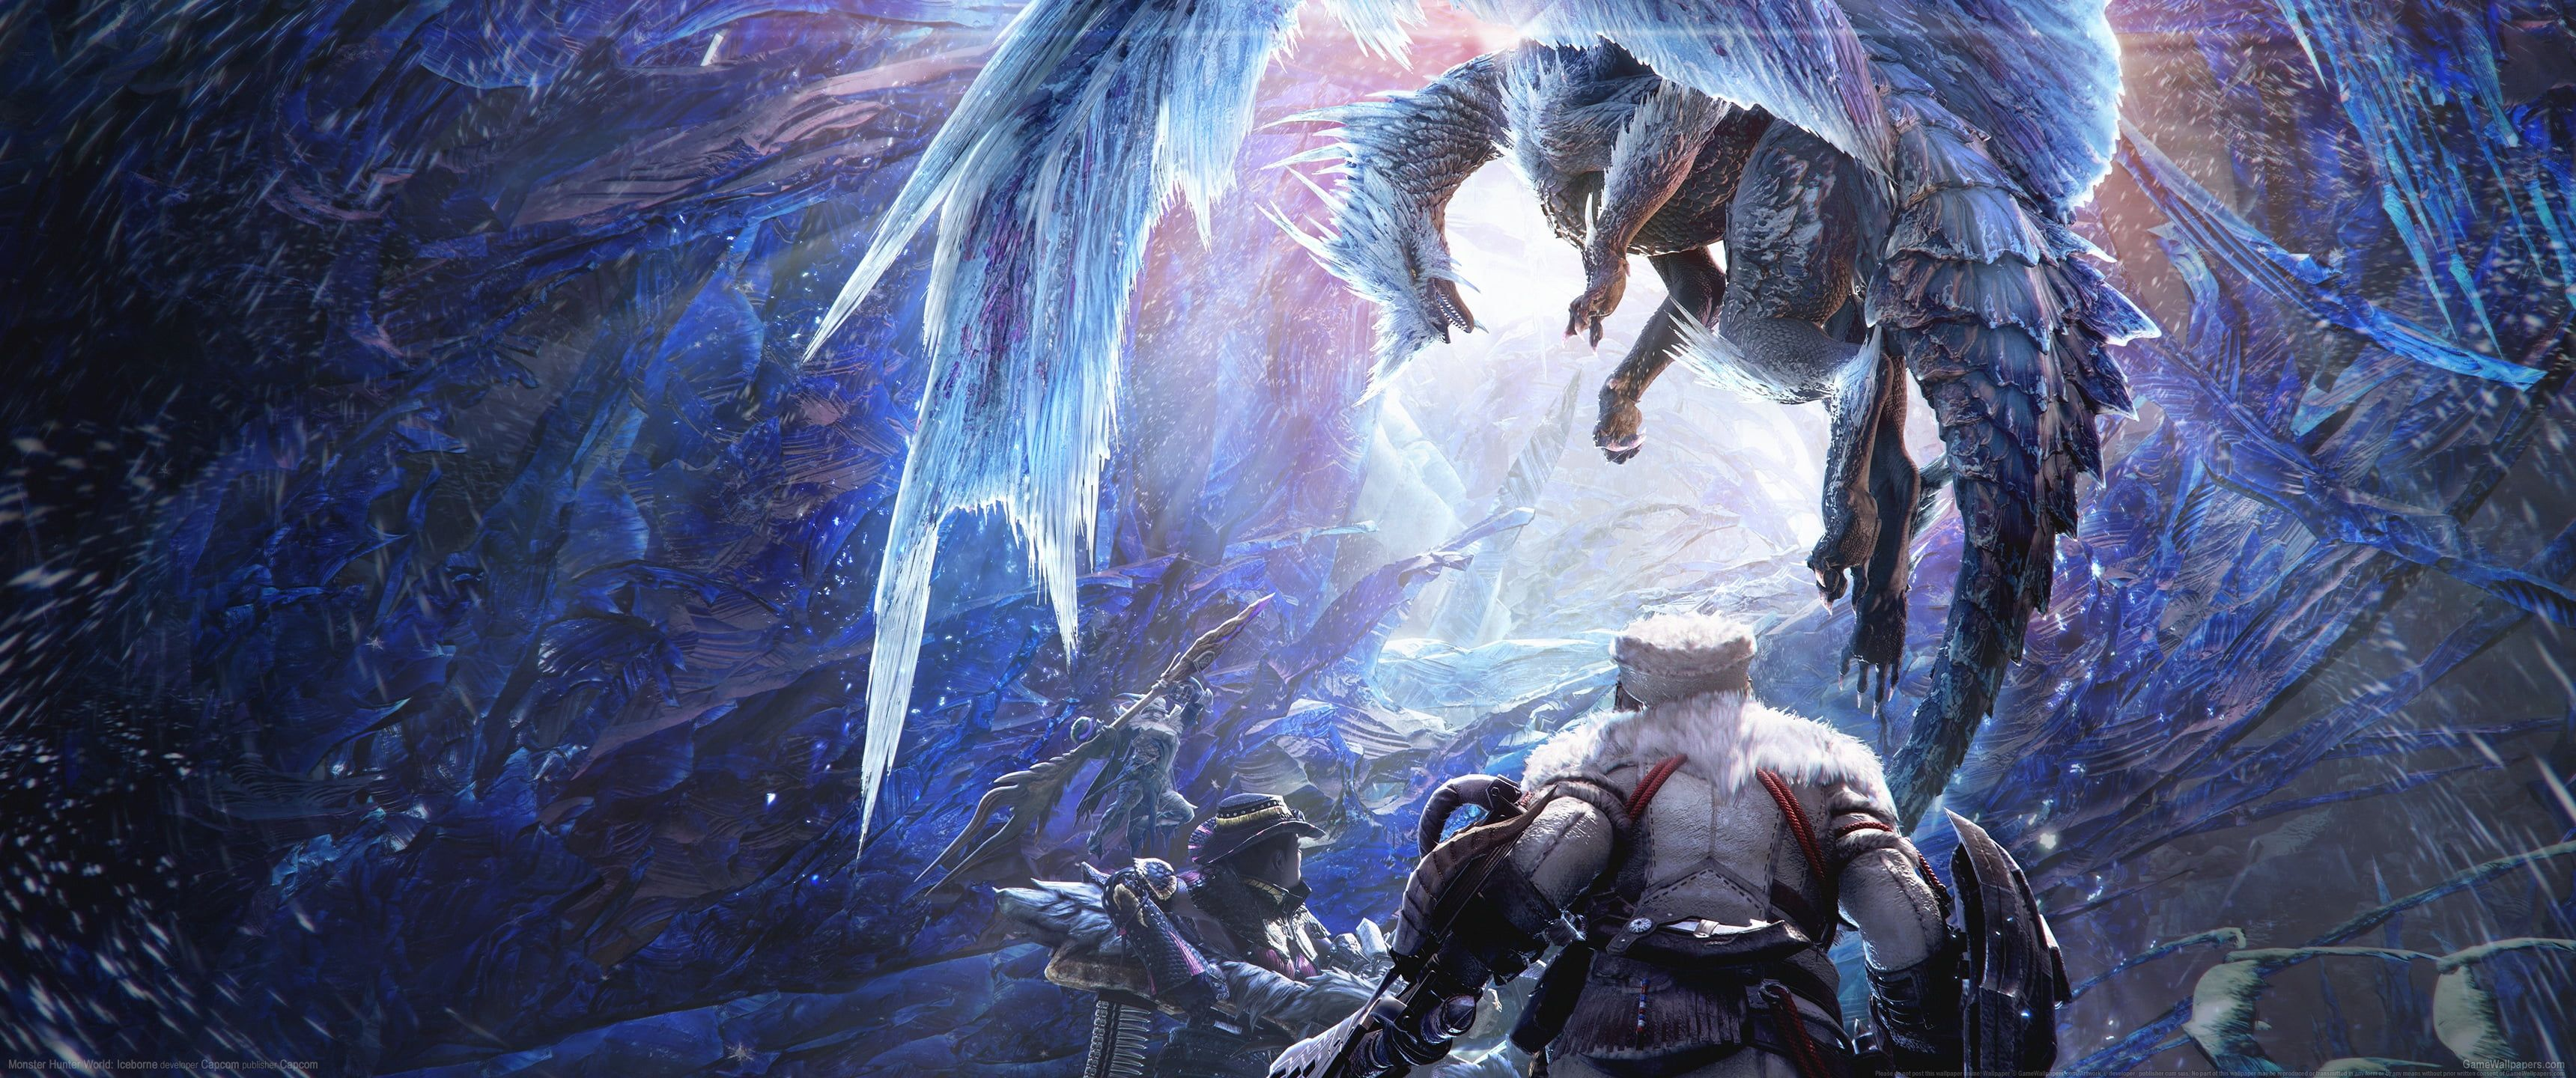 Pin By Jamie Lindsey On Mhw Monster Hunter World Monster Hunter World Wallpaper Monster Hunter